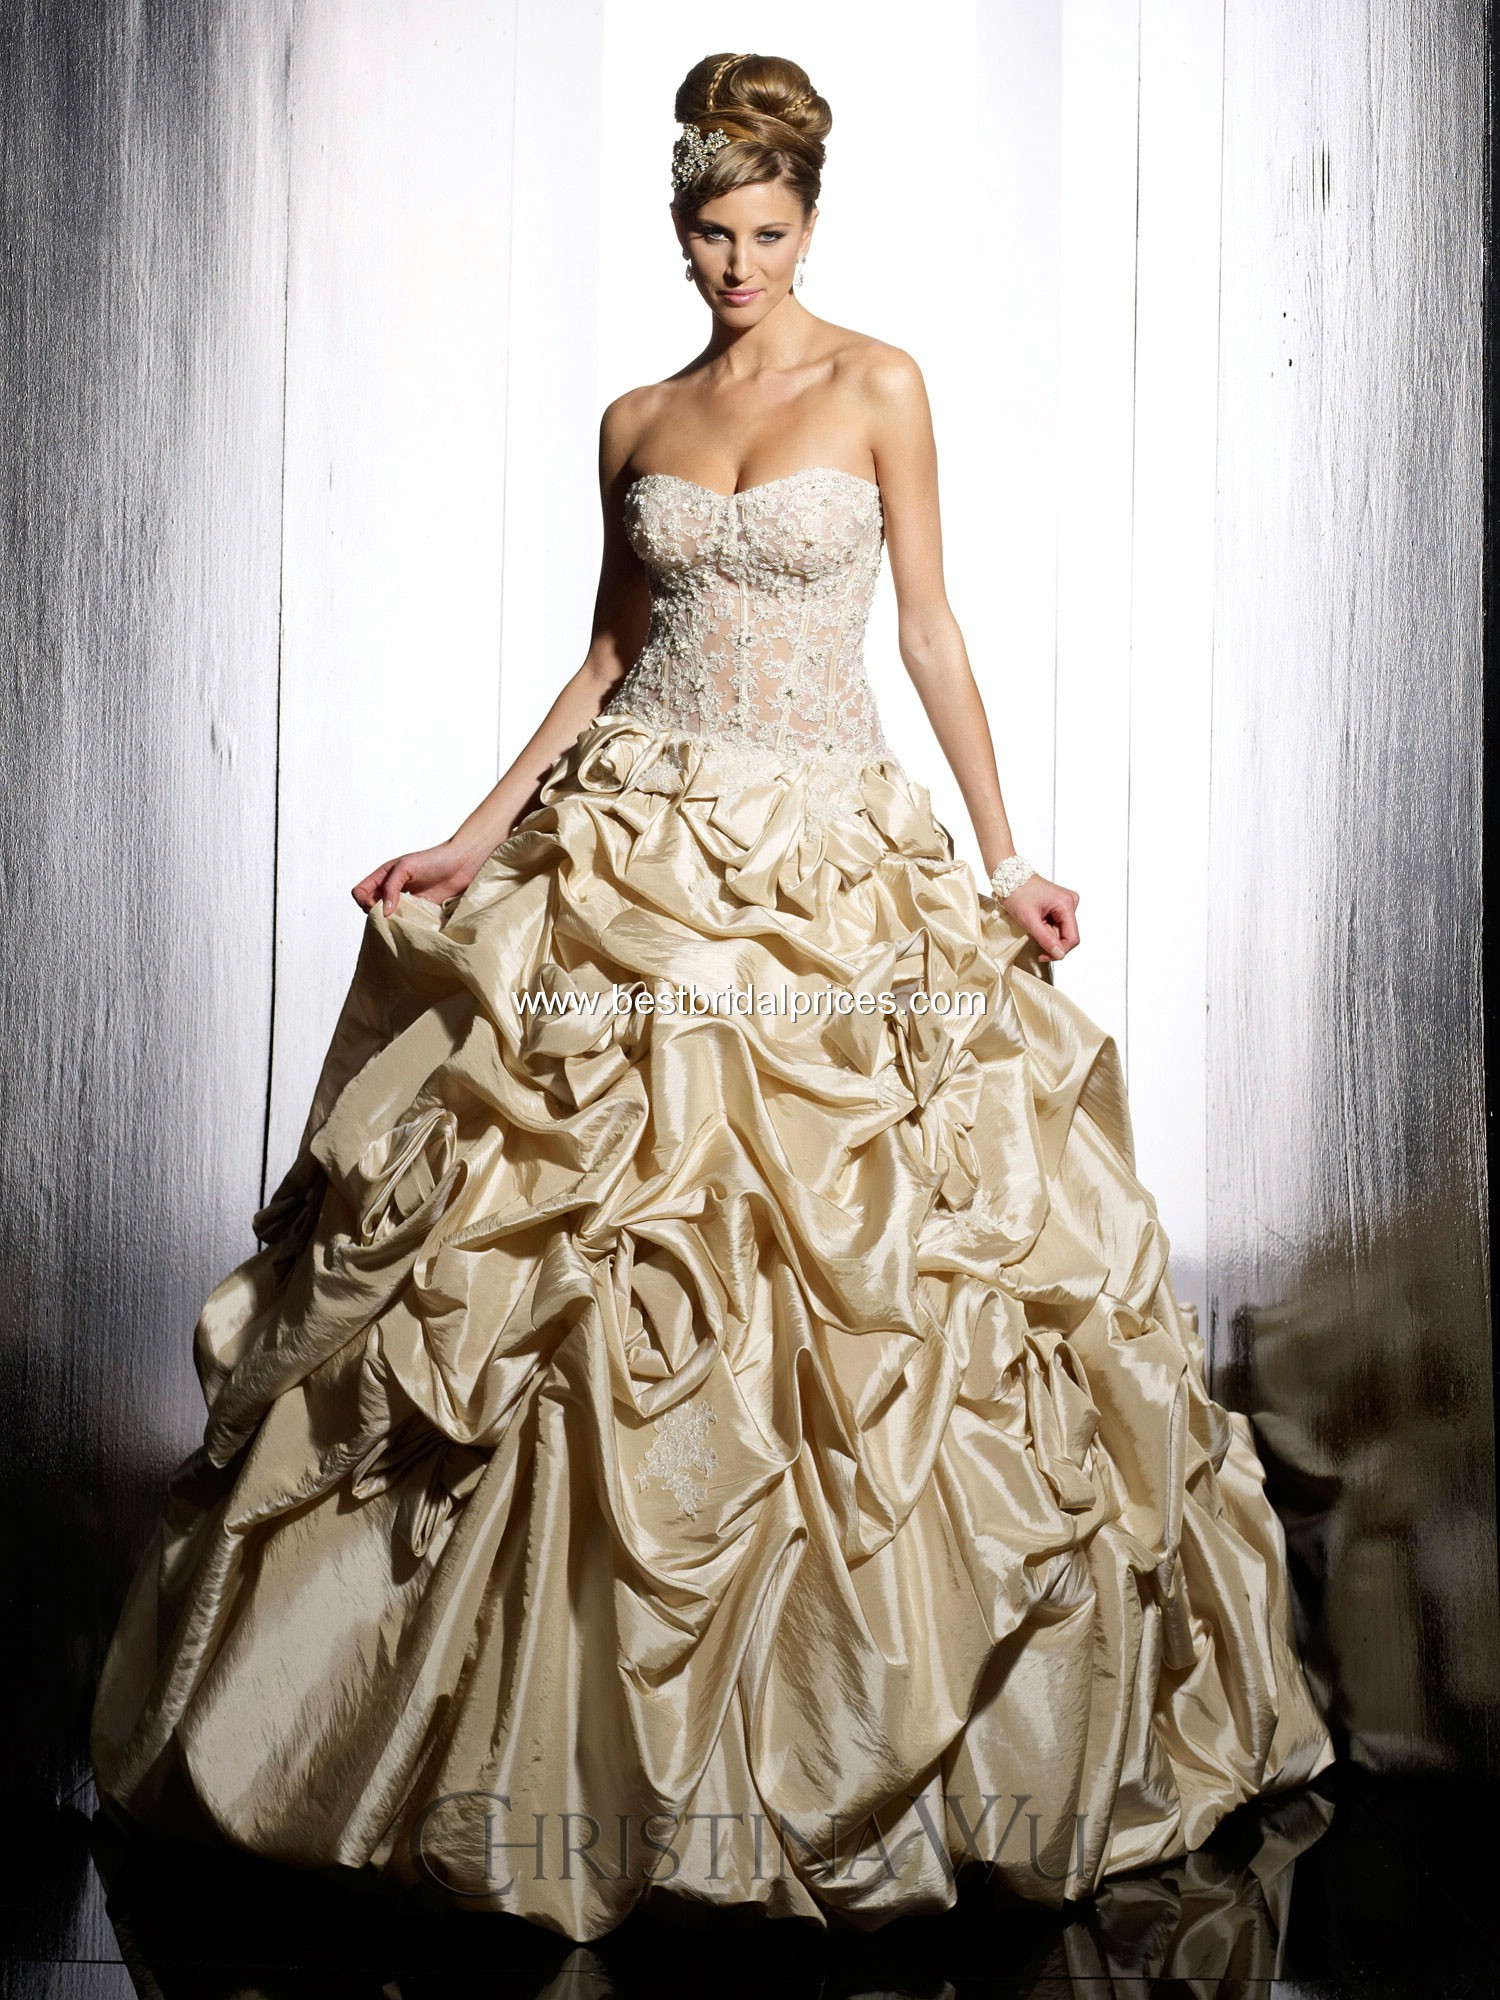 Top ten wedding dress style in 2013 gold wedding for Wedding dress pick up style